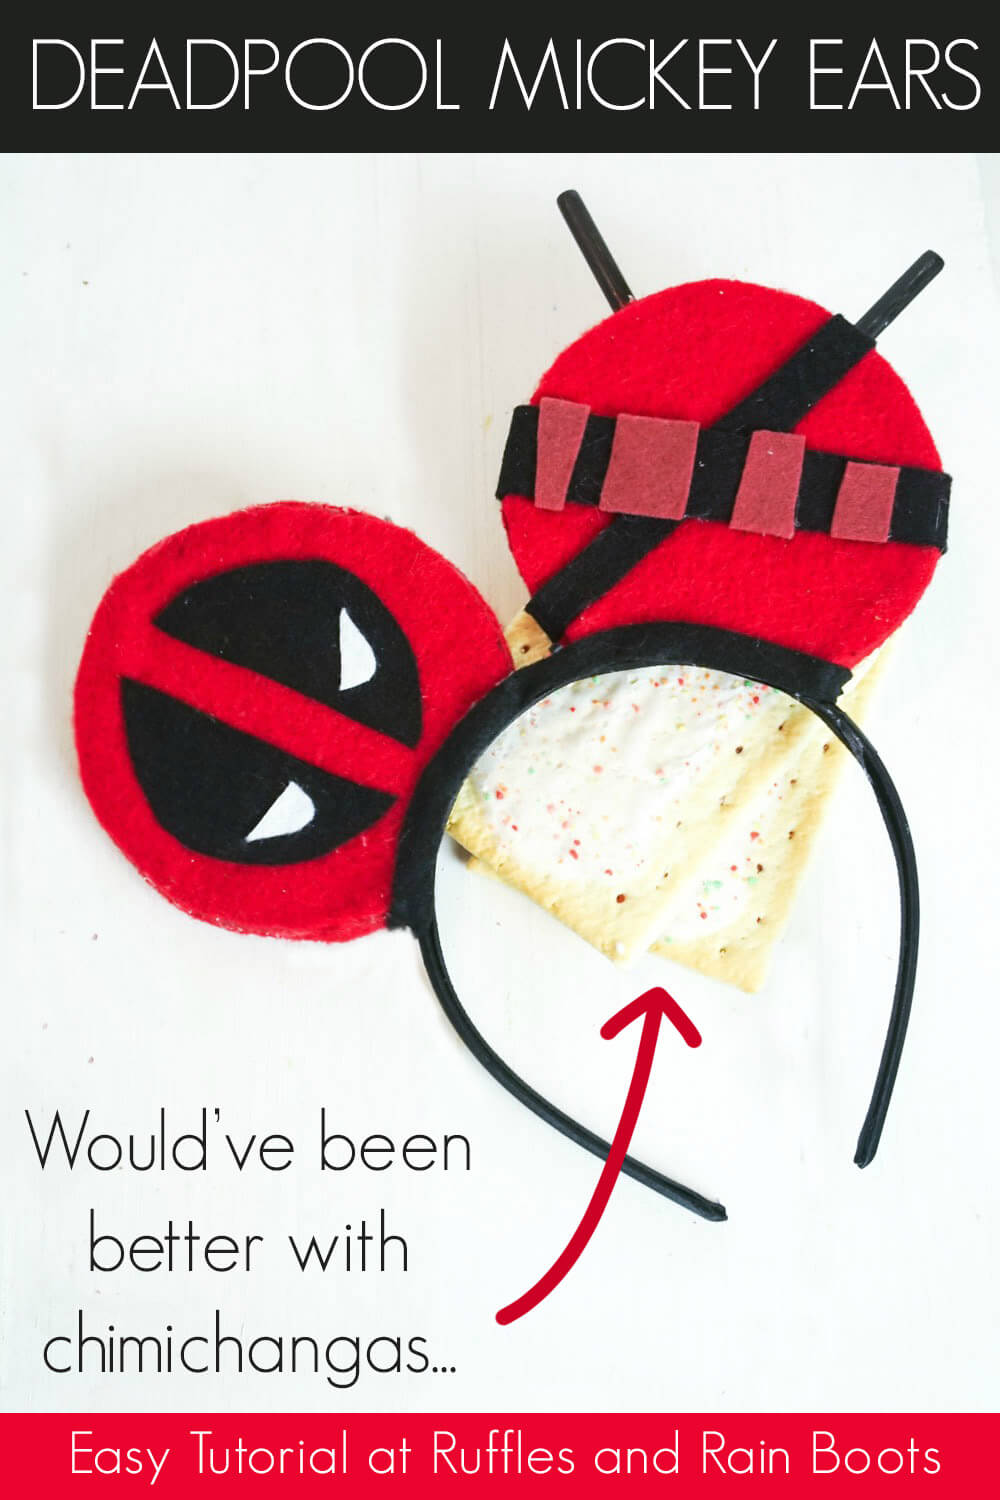 deadpool mickey mouse ears diy on a white background with poptarts with text which reads deadpool mickey ears would've been better with chimichangas